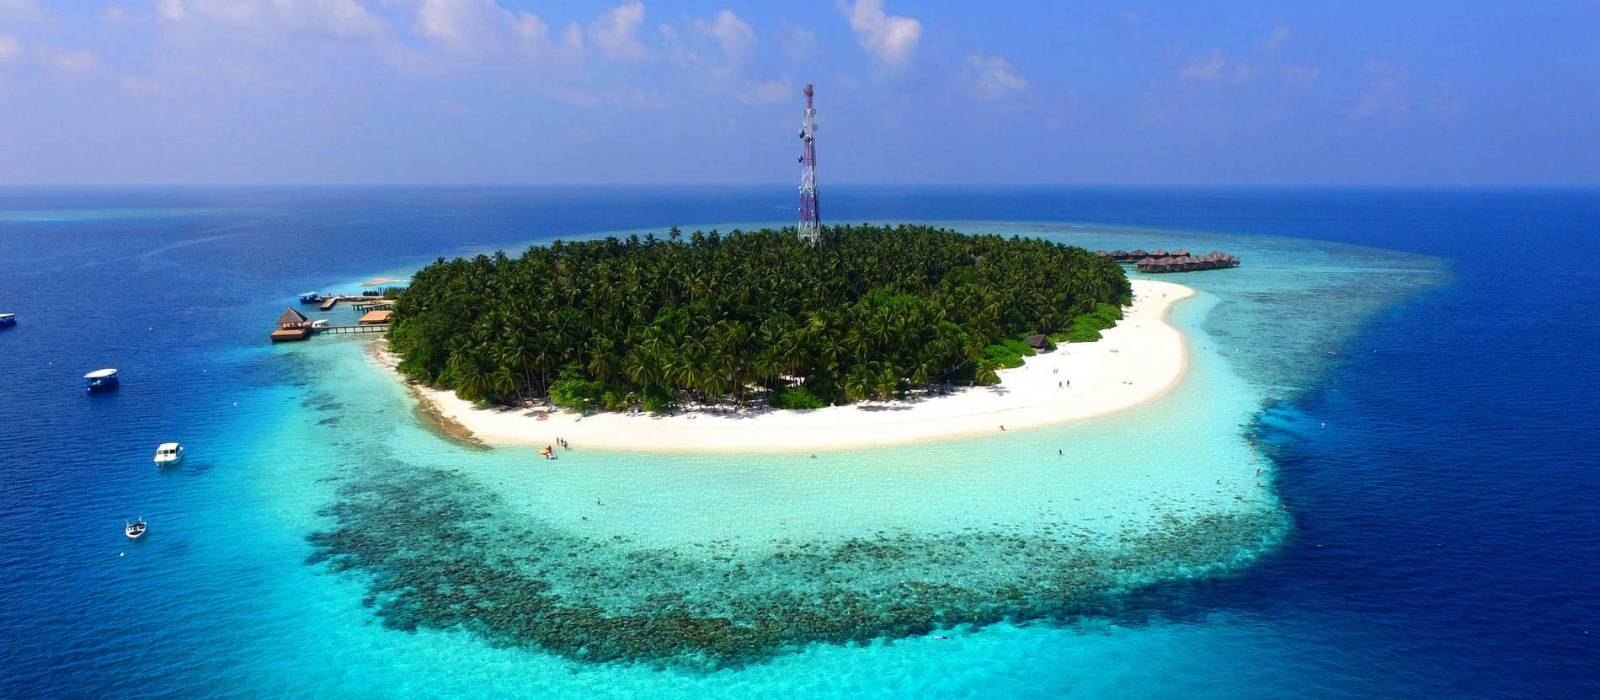 Highlights of Maldives - Things to do in Maldives